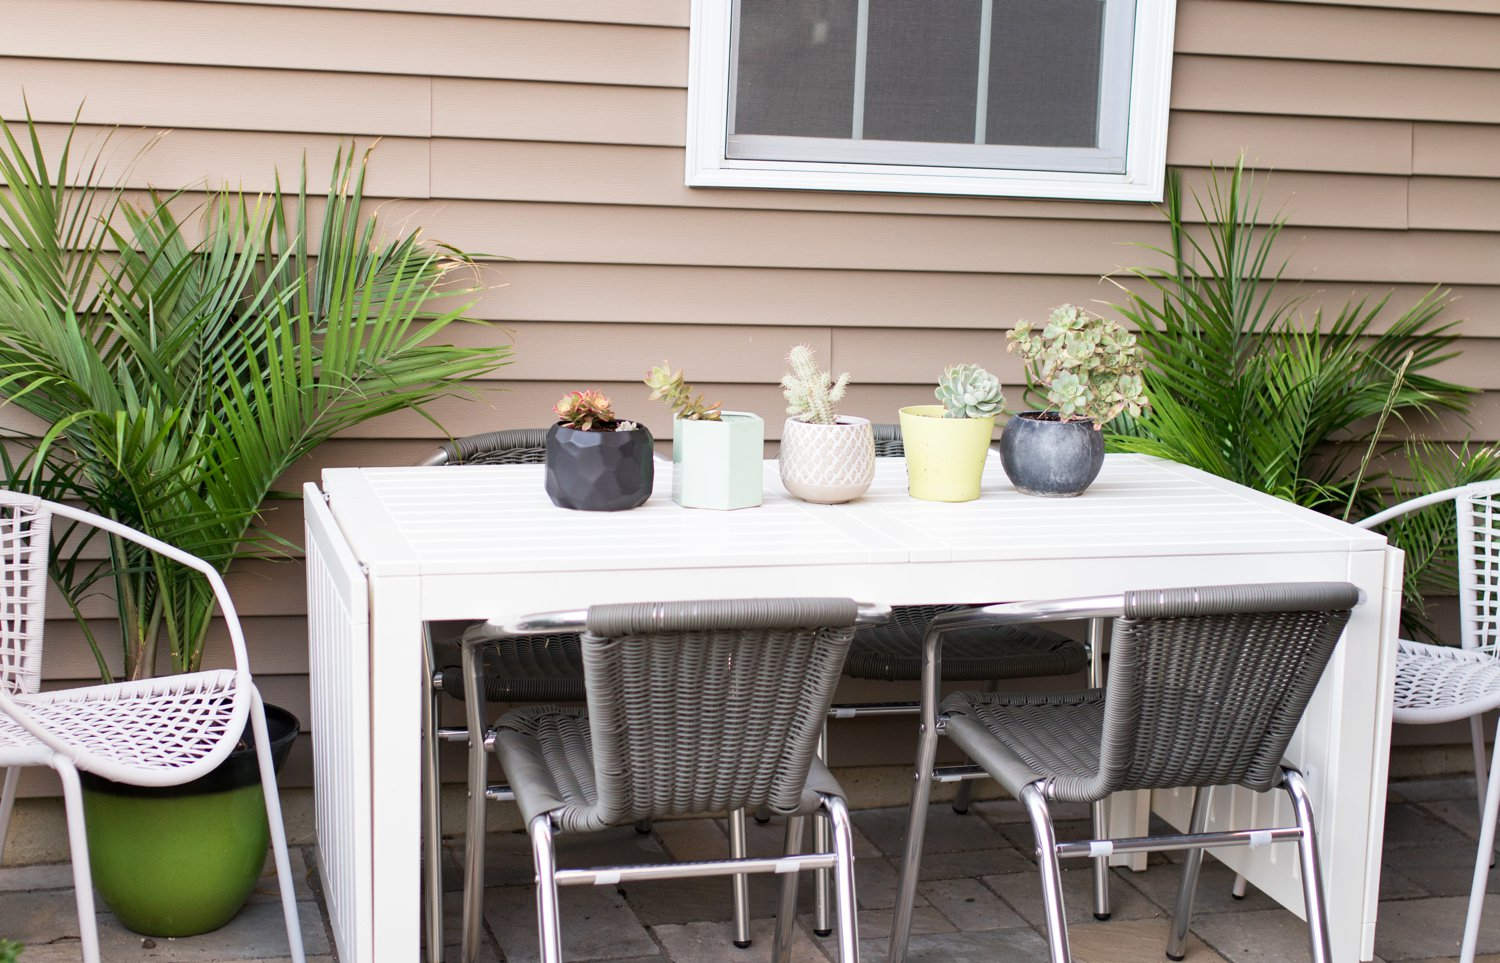 Sabrina Reis Photography | Minneapolis Photography | Patio Update_0011.jpg